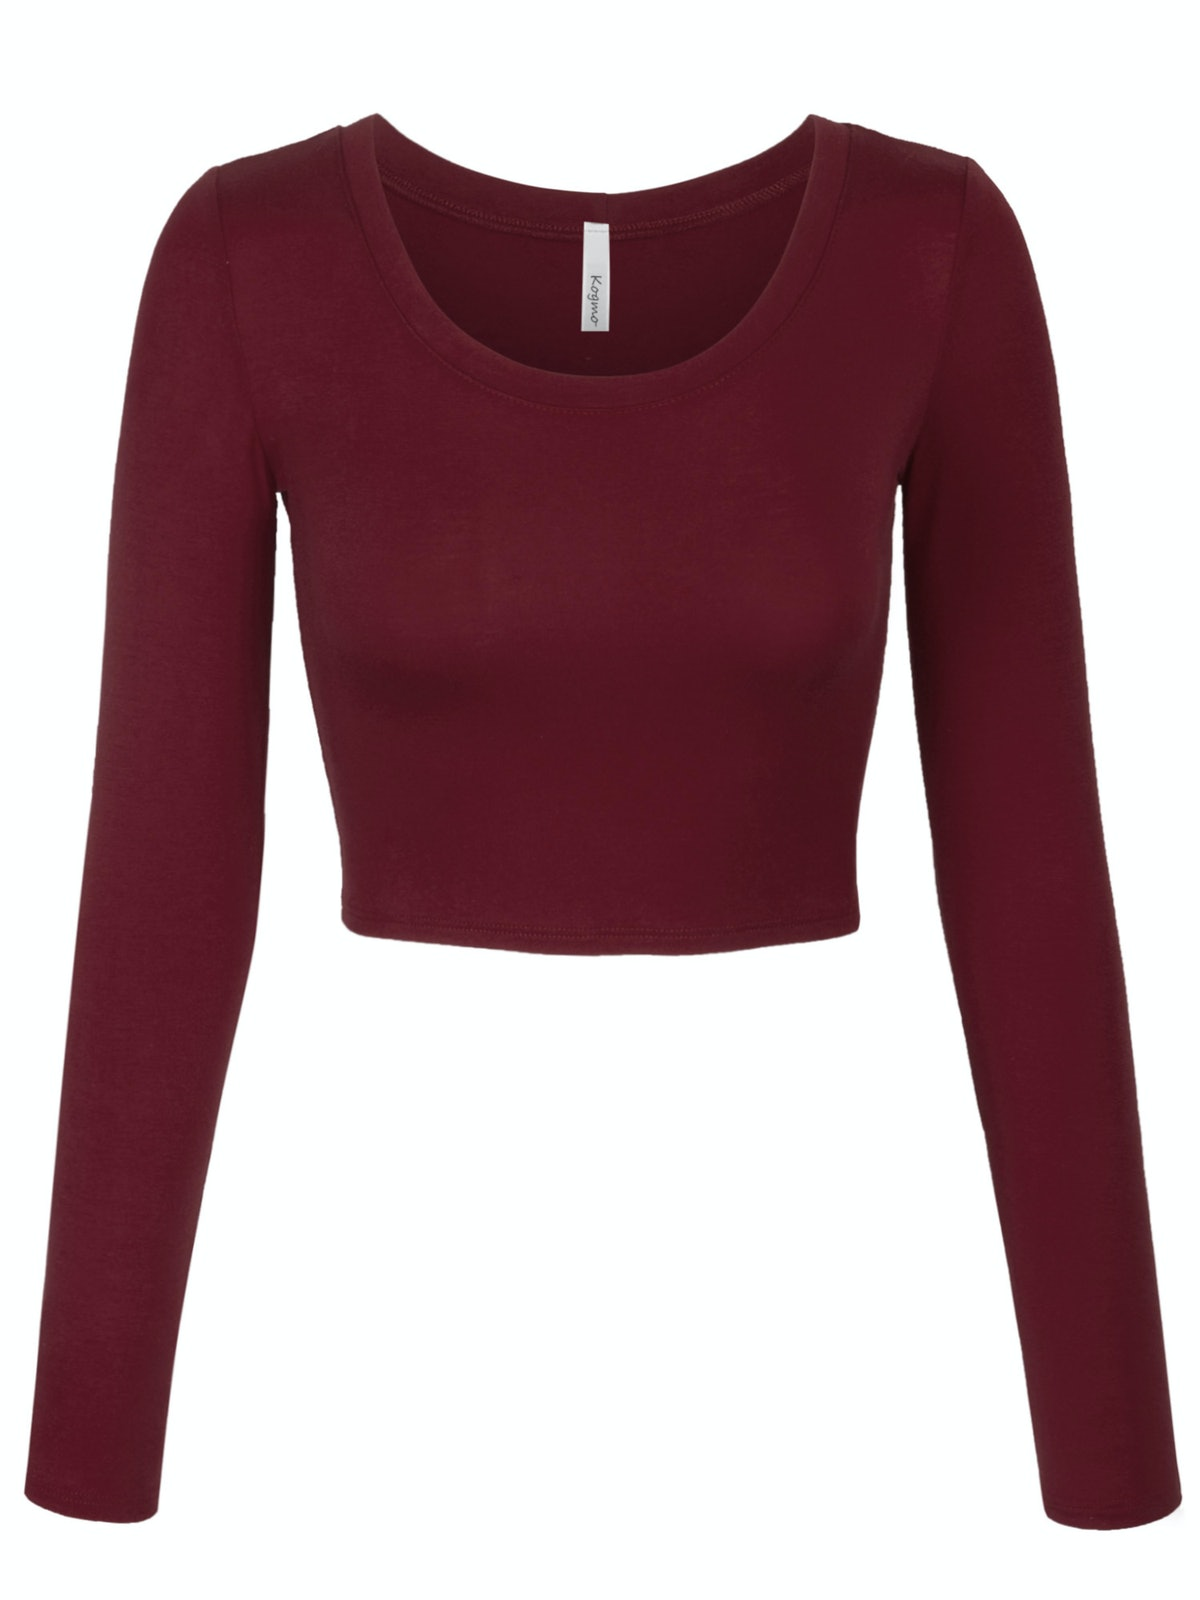 KOGMO Womens Long Sleeve Crop Top Solid Round Neck T Shirt